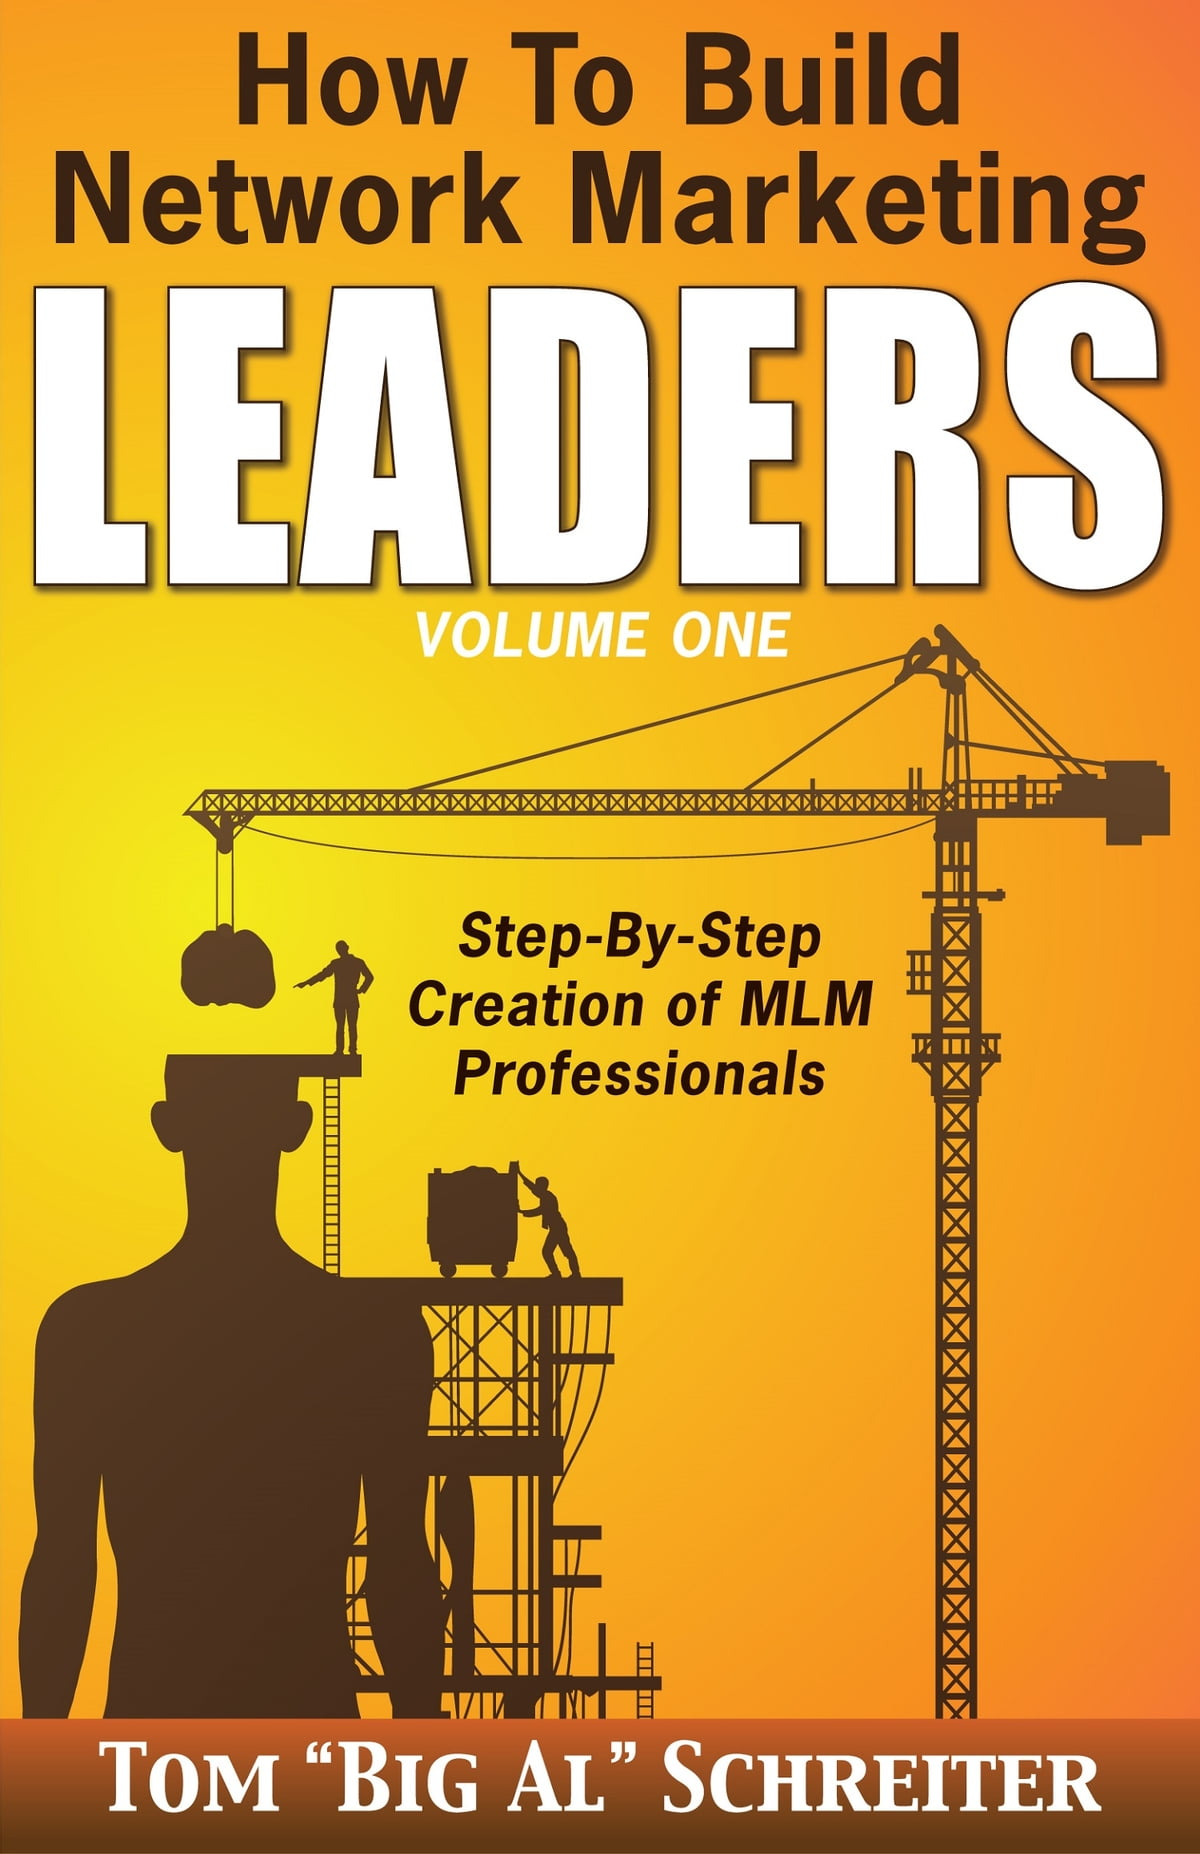 Go pro ebook by eric worre 9780988667914 rakuten kobo how to build network marketing leaders volume one step by step creation of fandeluxe Gallery